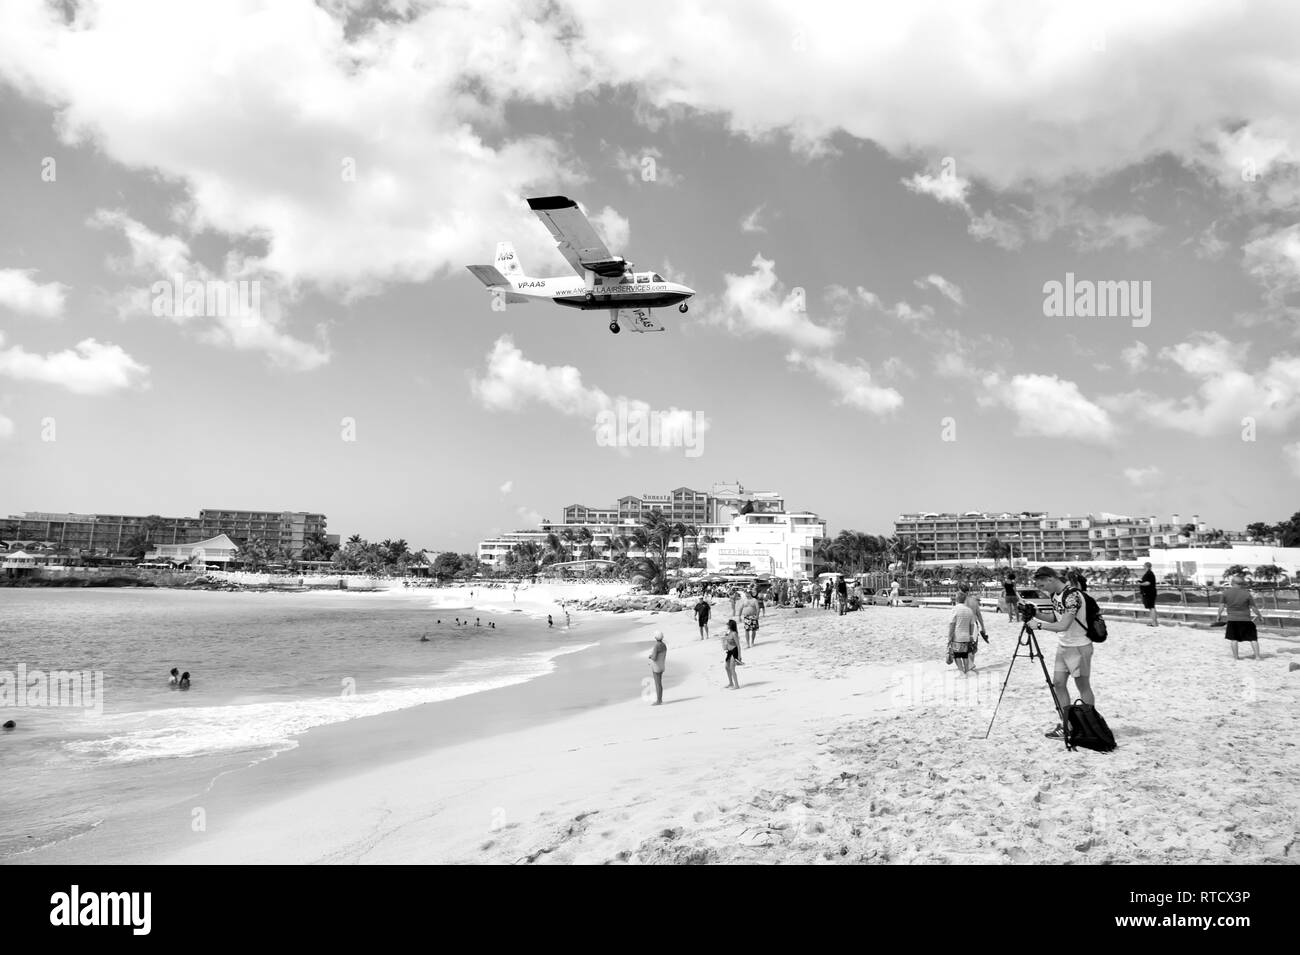 St Maarten, Netherlands - February 13, 2016: International jet flight lands over Maho beach at Princess Juliana airport on Caribbean island of St Martin - Stock Image